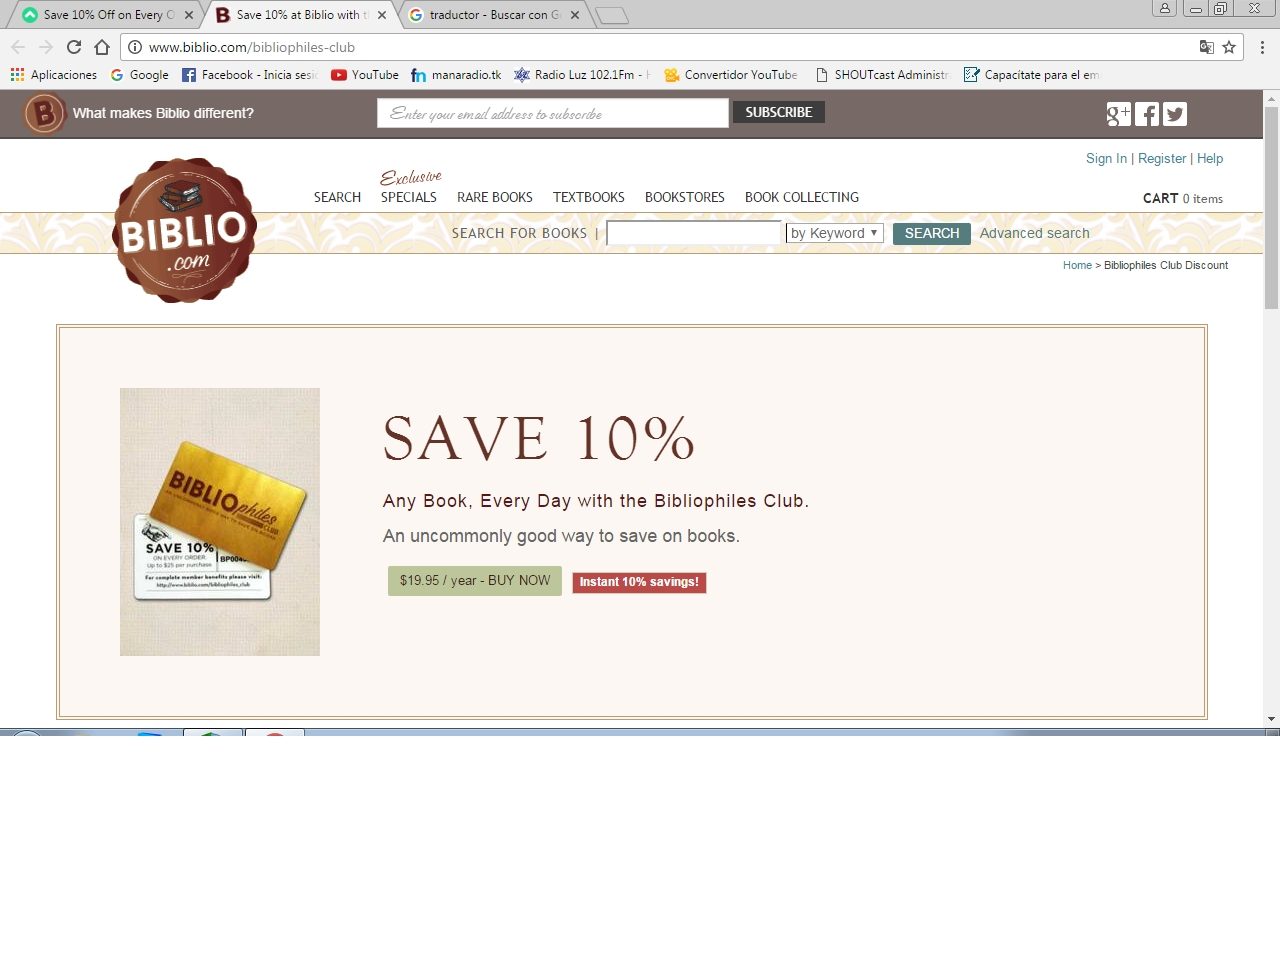 Biblio discount coupons